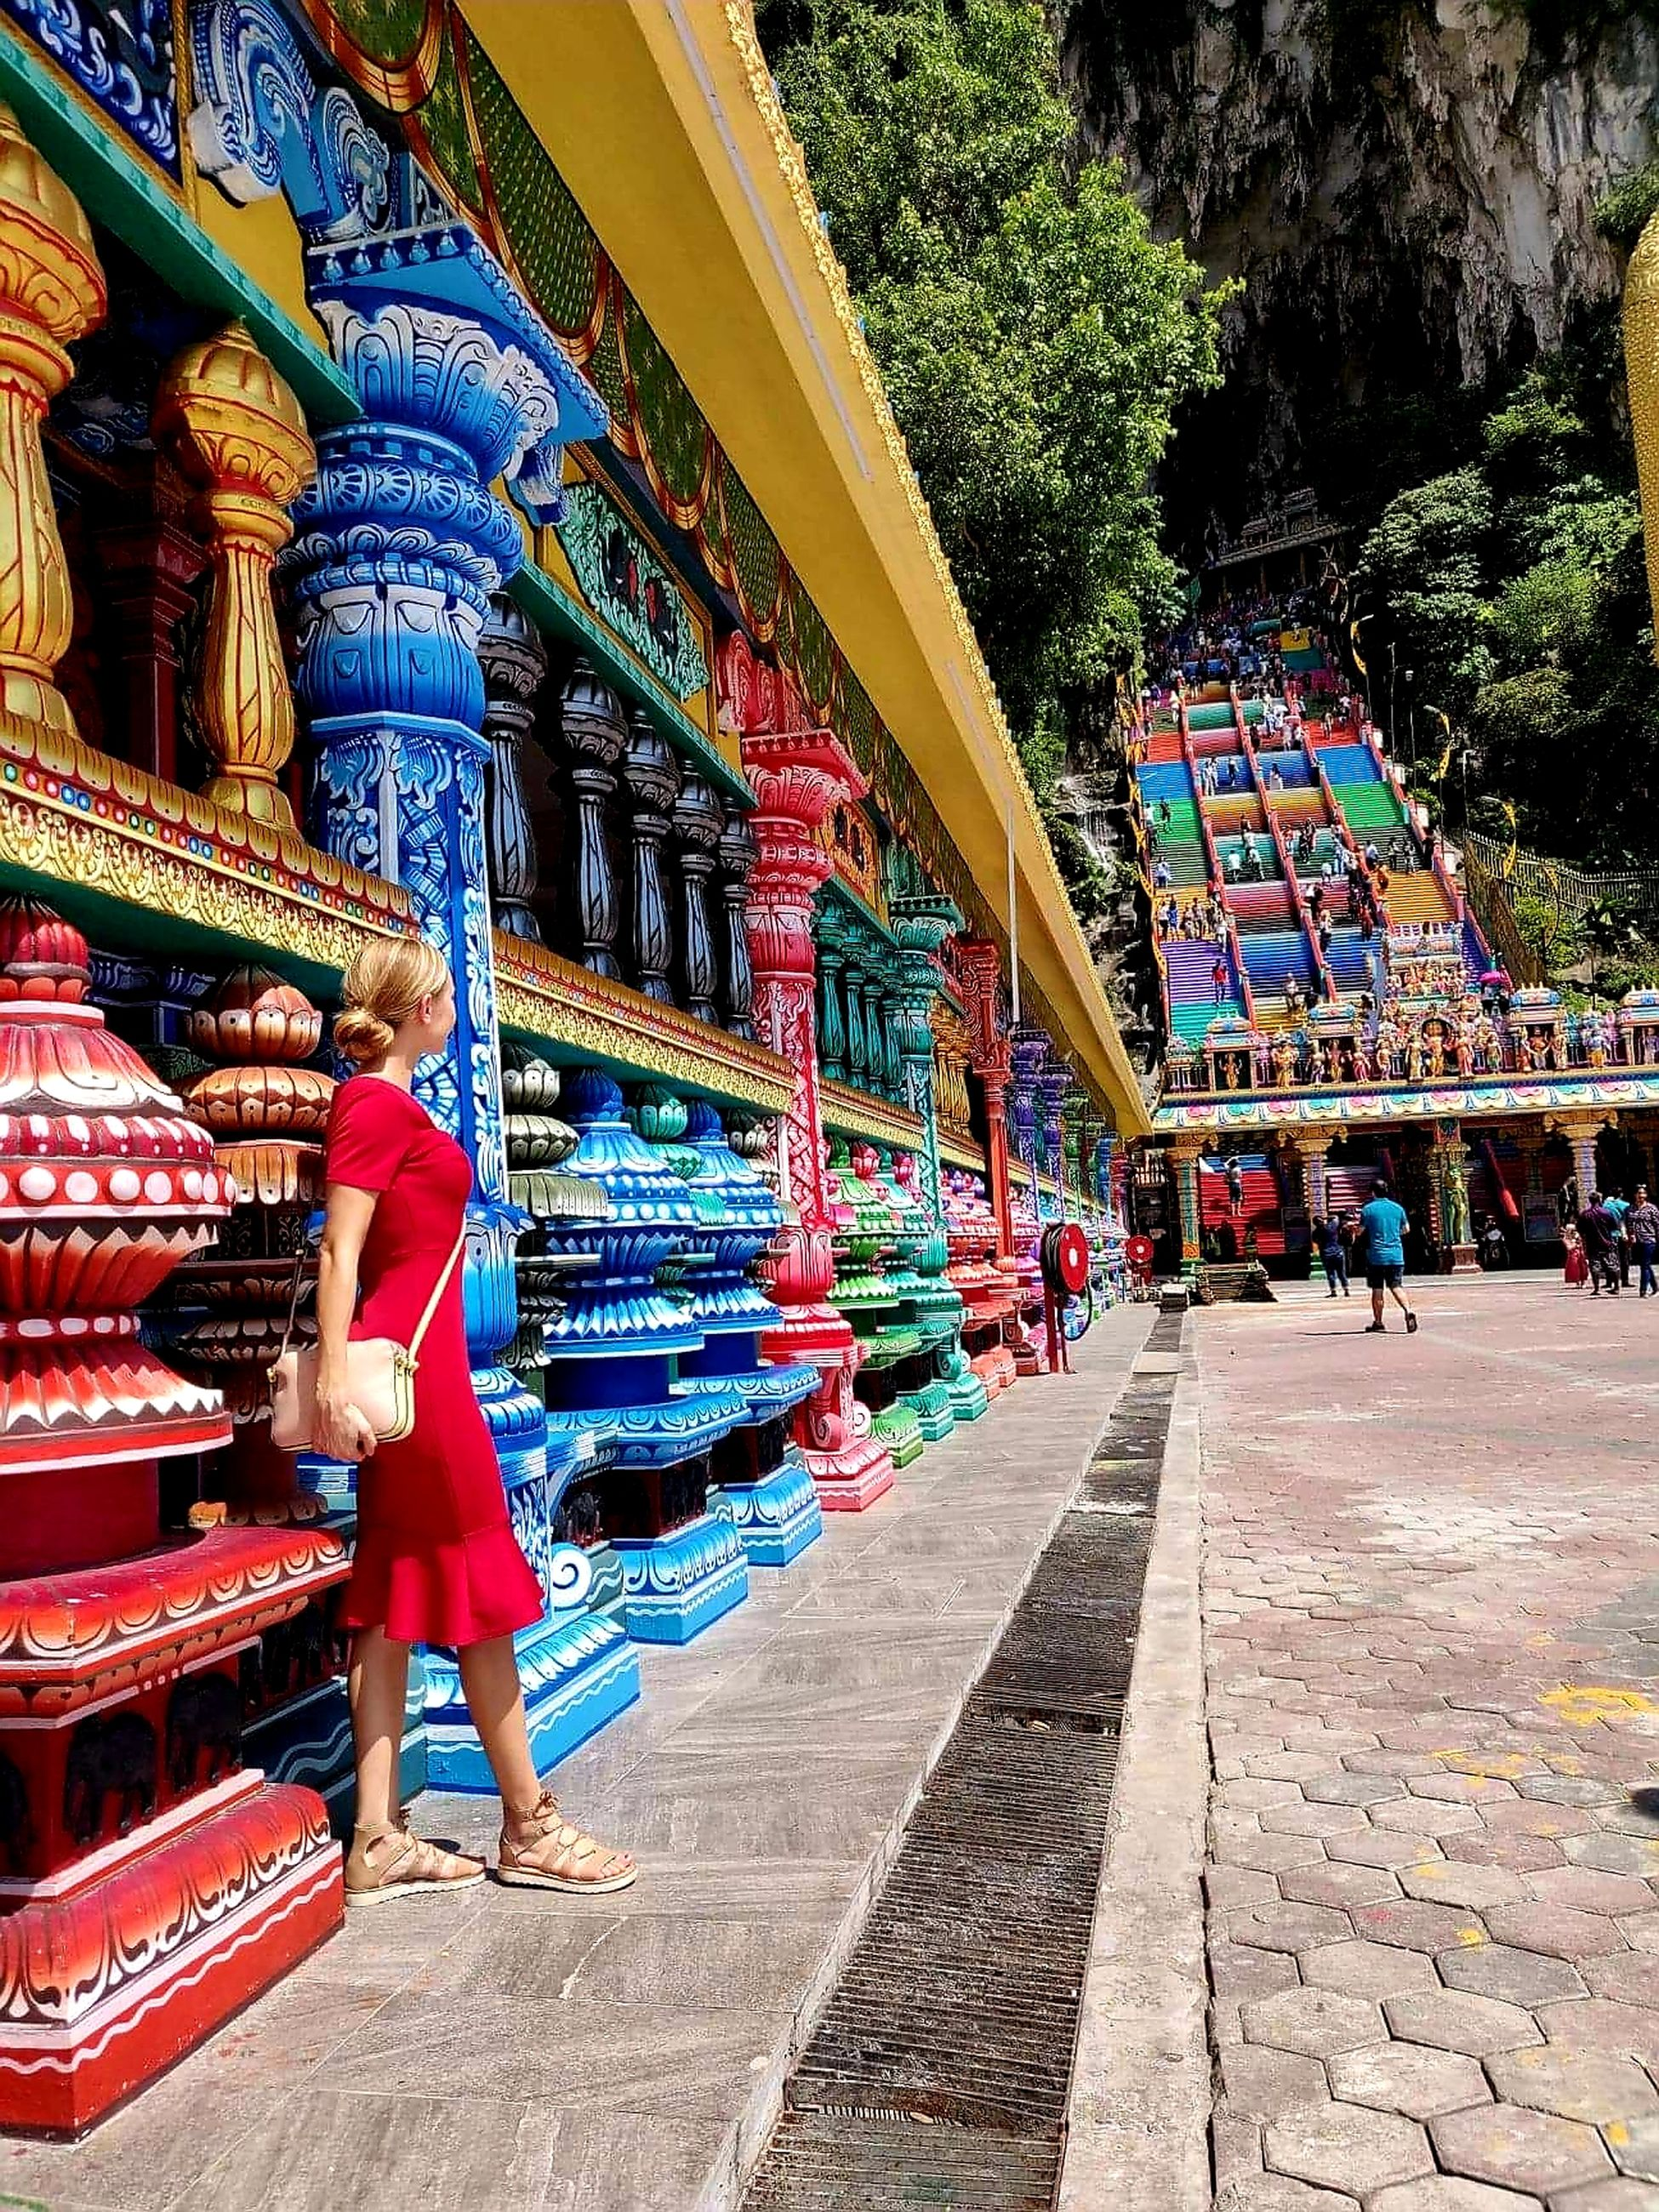 architecture, multi colored, built structure, art and craft, day, belief, religion, real people, place of worship, men, spirituality, incidental people, building exterior, building, adult, people, outdoors, creativity, lifestyles